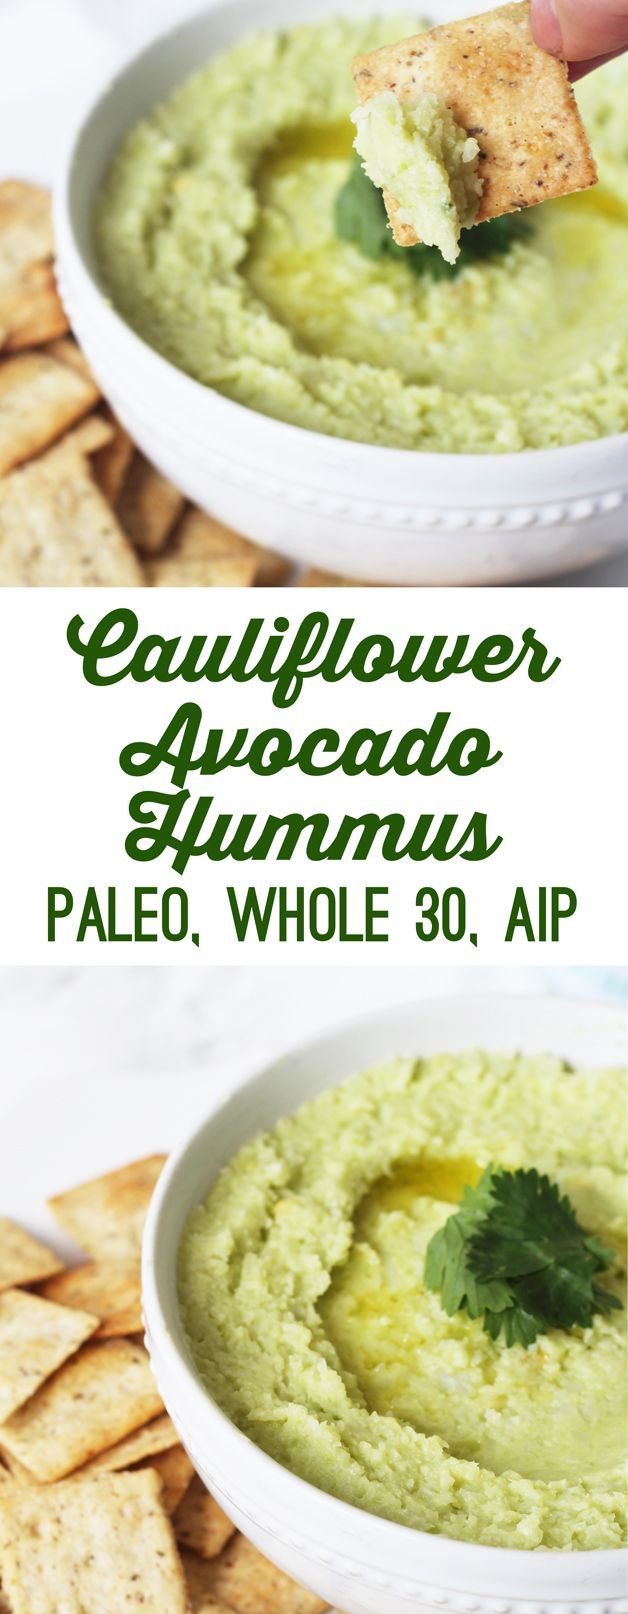 Avocado Cauliflower Hummus (Whole 30, Paleo, AIP) - Unbound Wellness